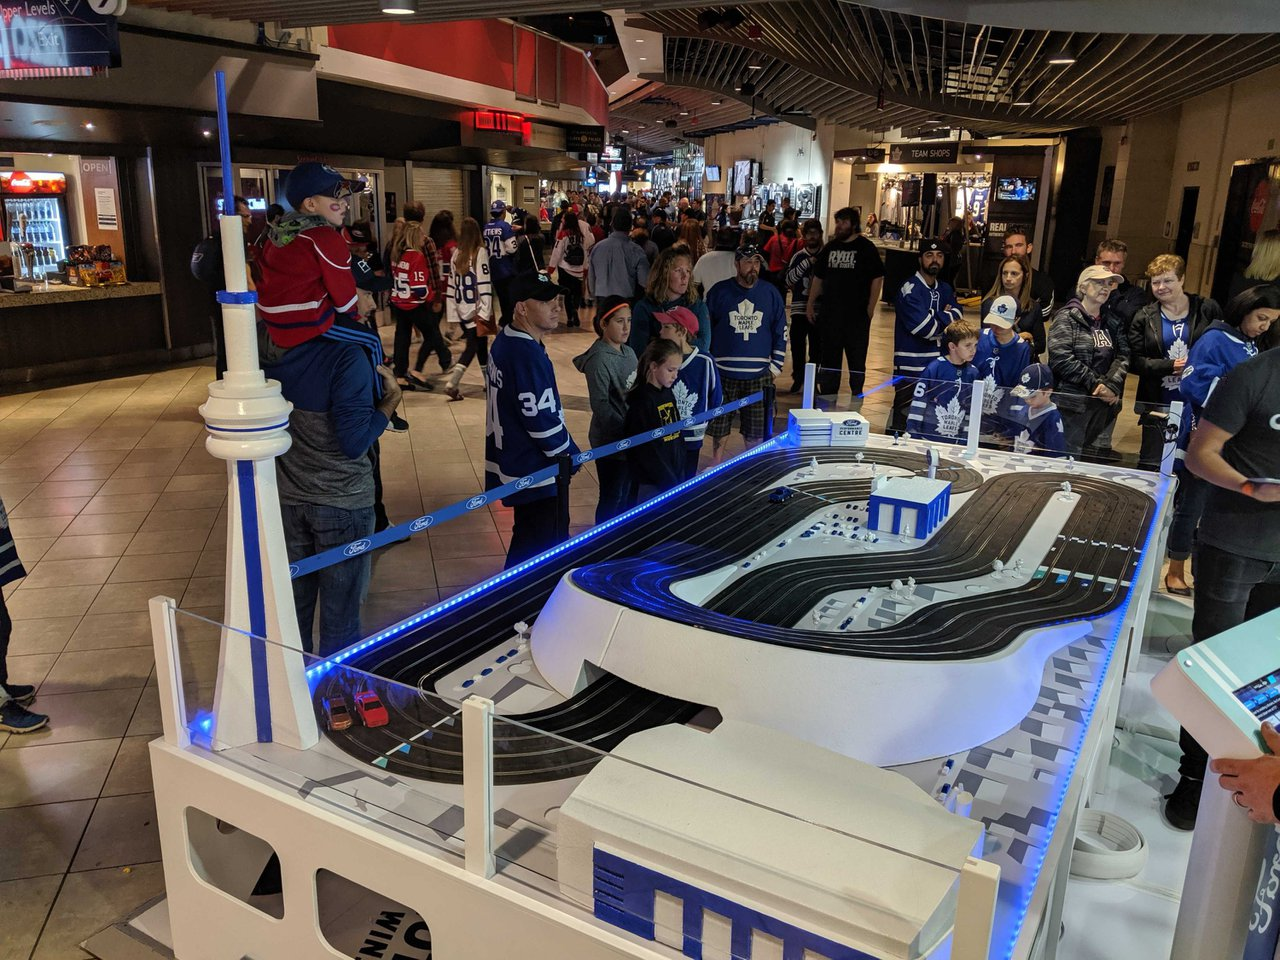 Ford Race to the Game photo MVIMG_20190925_181535.jpg